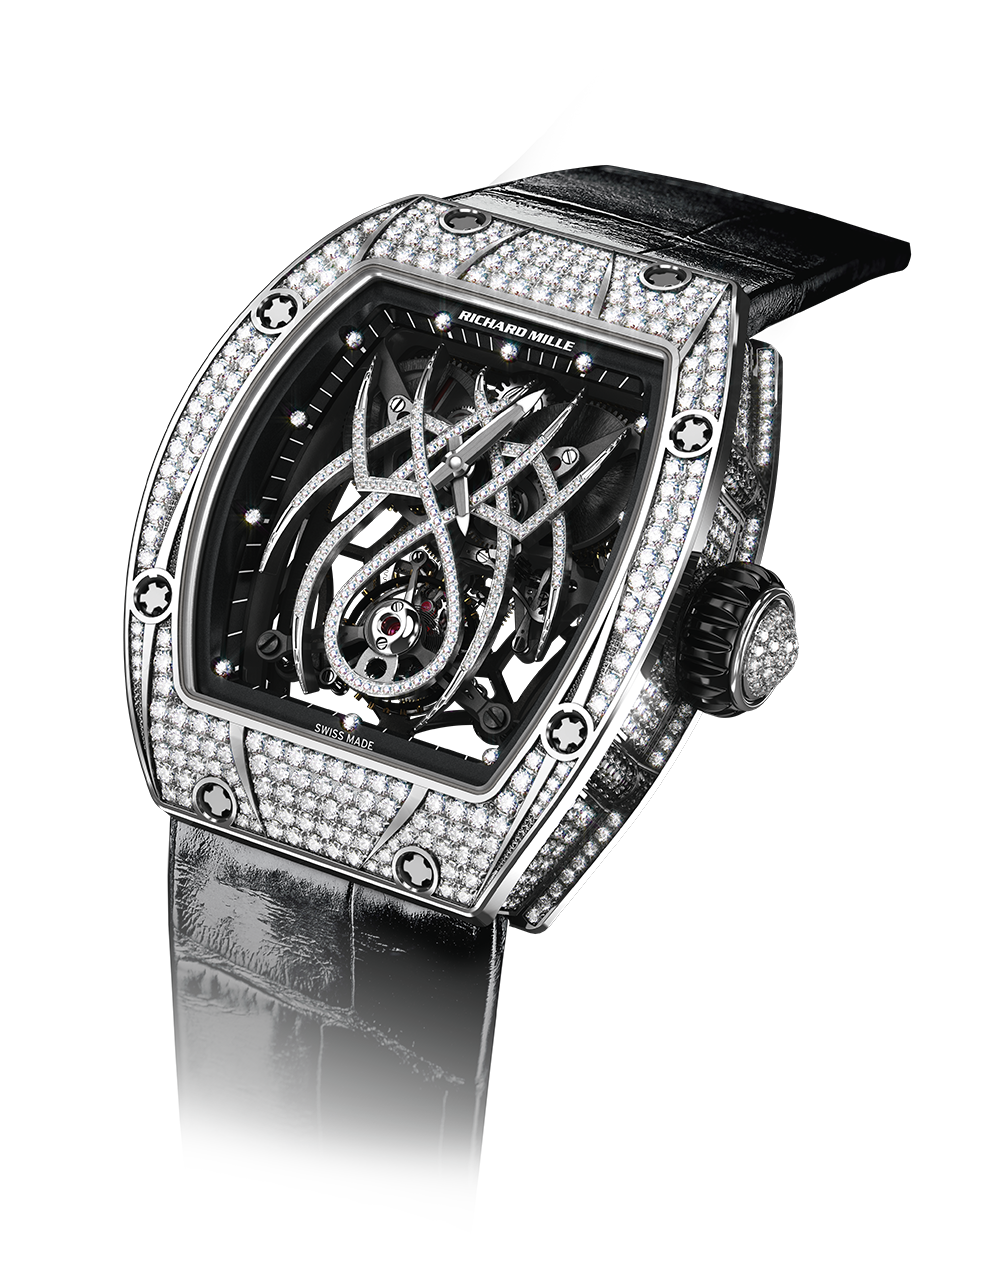 Rm 19 01 Tourbillon Spider Richard Mille Eyeonjewels